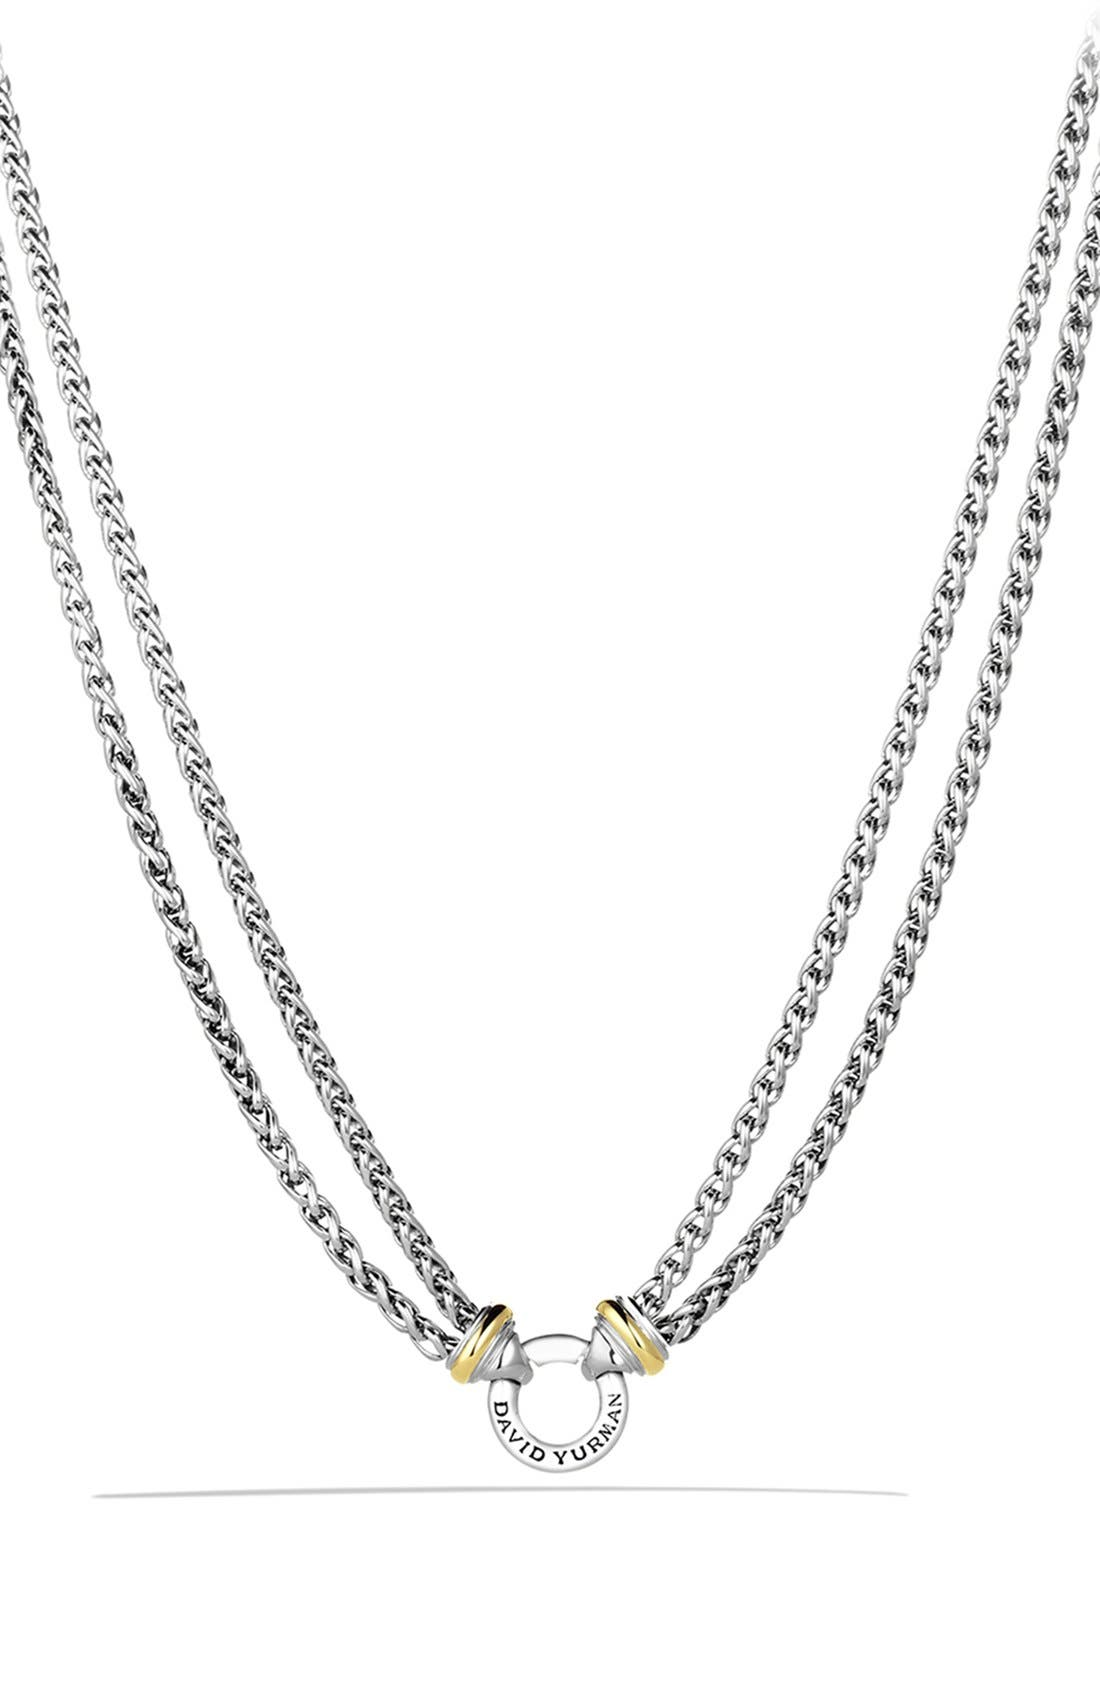 Alternate Image 1 Selected - David Yurman 'Double Wheat' Chain Necklace with Gold